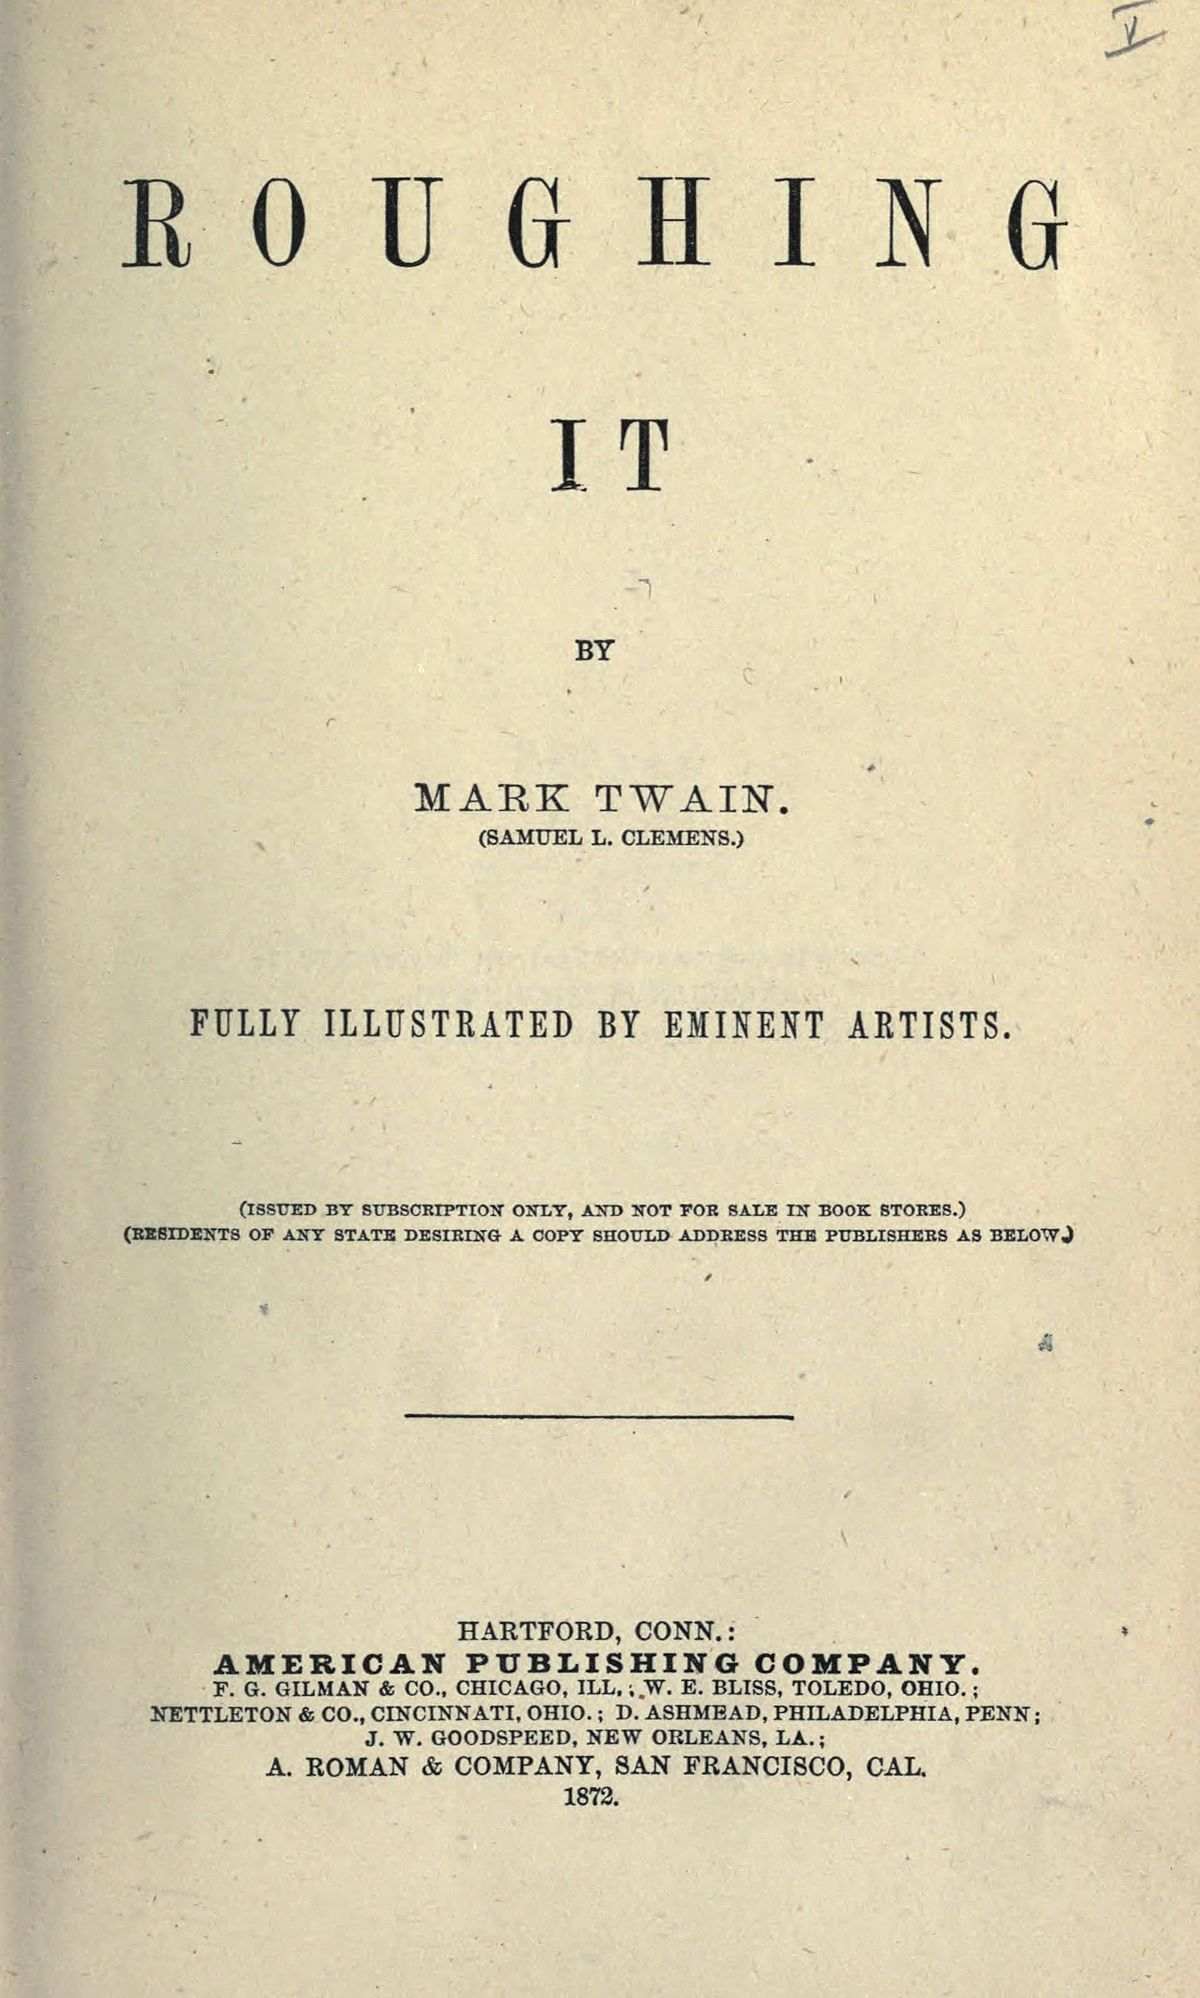 Essay On Mark Twain Roughing It The Complete Essays Of Mark Twain By